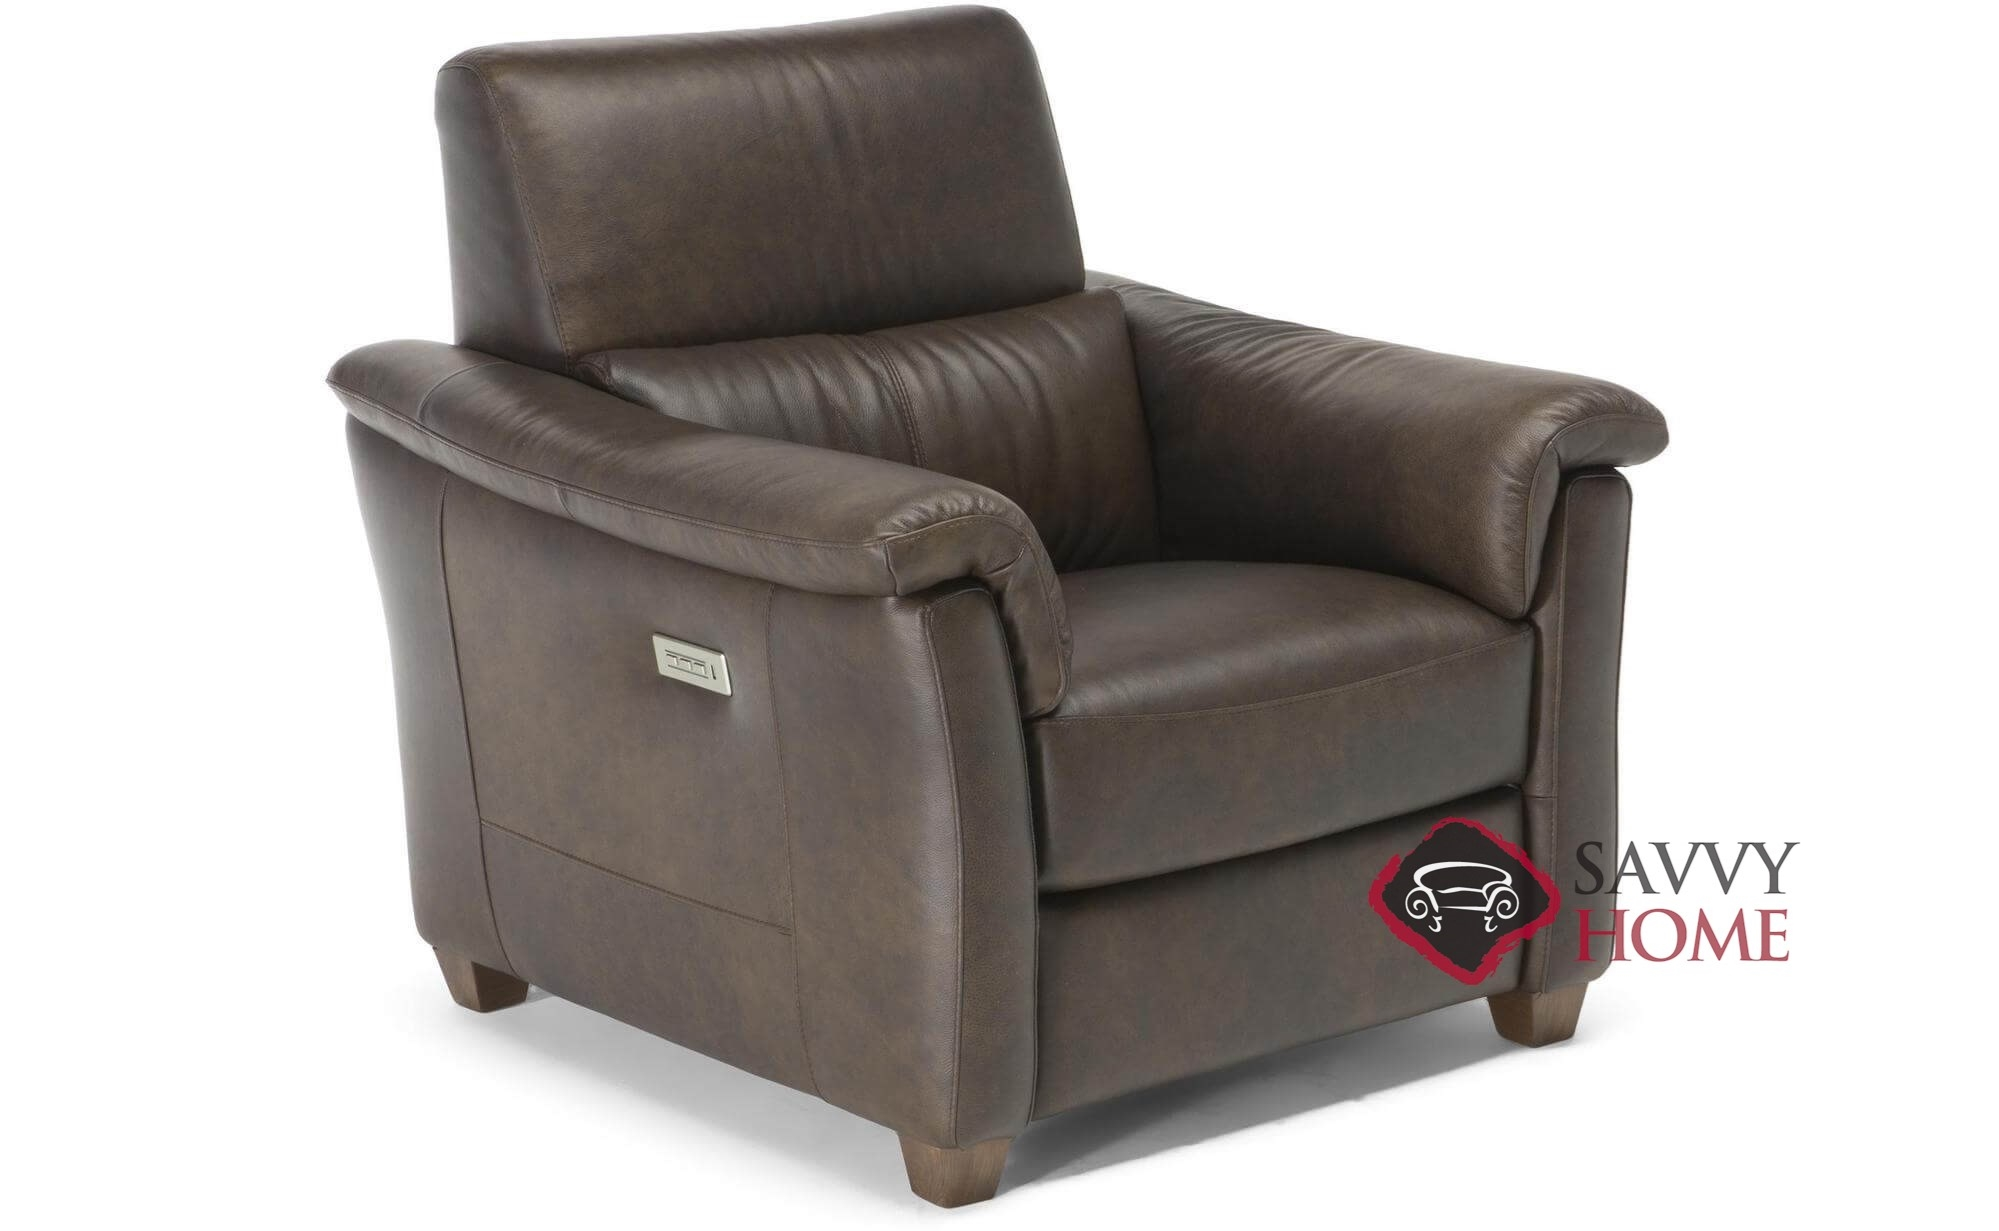 Delicieux Astuzia (C068) Leather Reclining Chair By Natuzzi Is Fully Customizable By  You | SavvyHomeStore.com